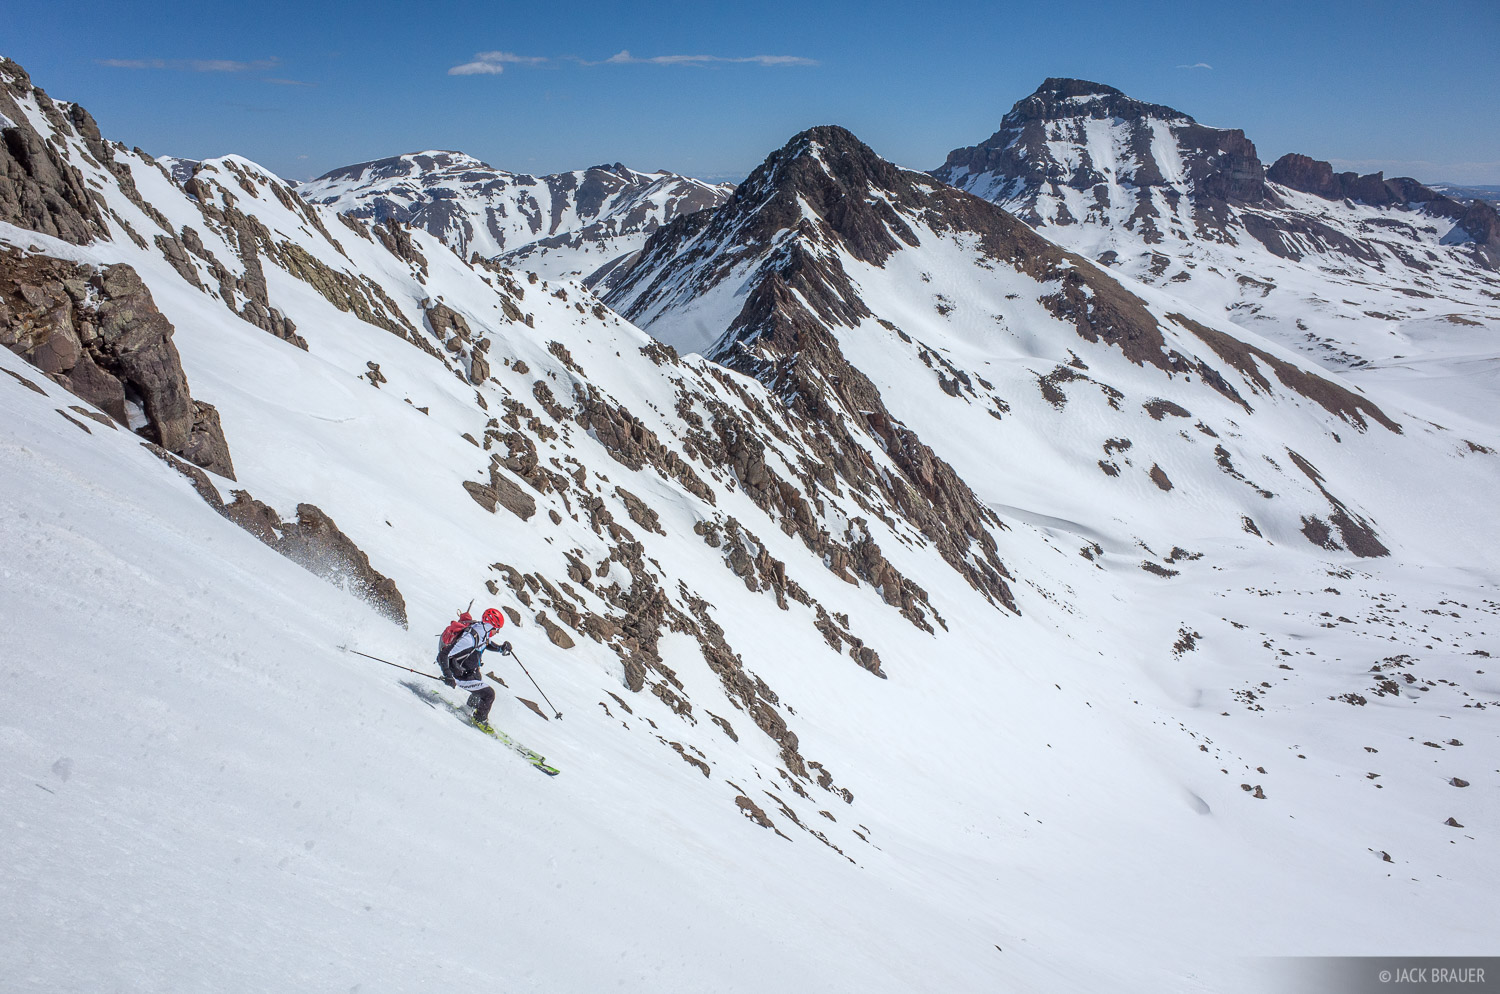 Colorado, San Juan Mountains, Uncompahgre Wilderness, Wetterhorn Peak, skiing, Uncompahgre Peak, photo